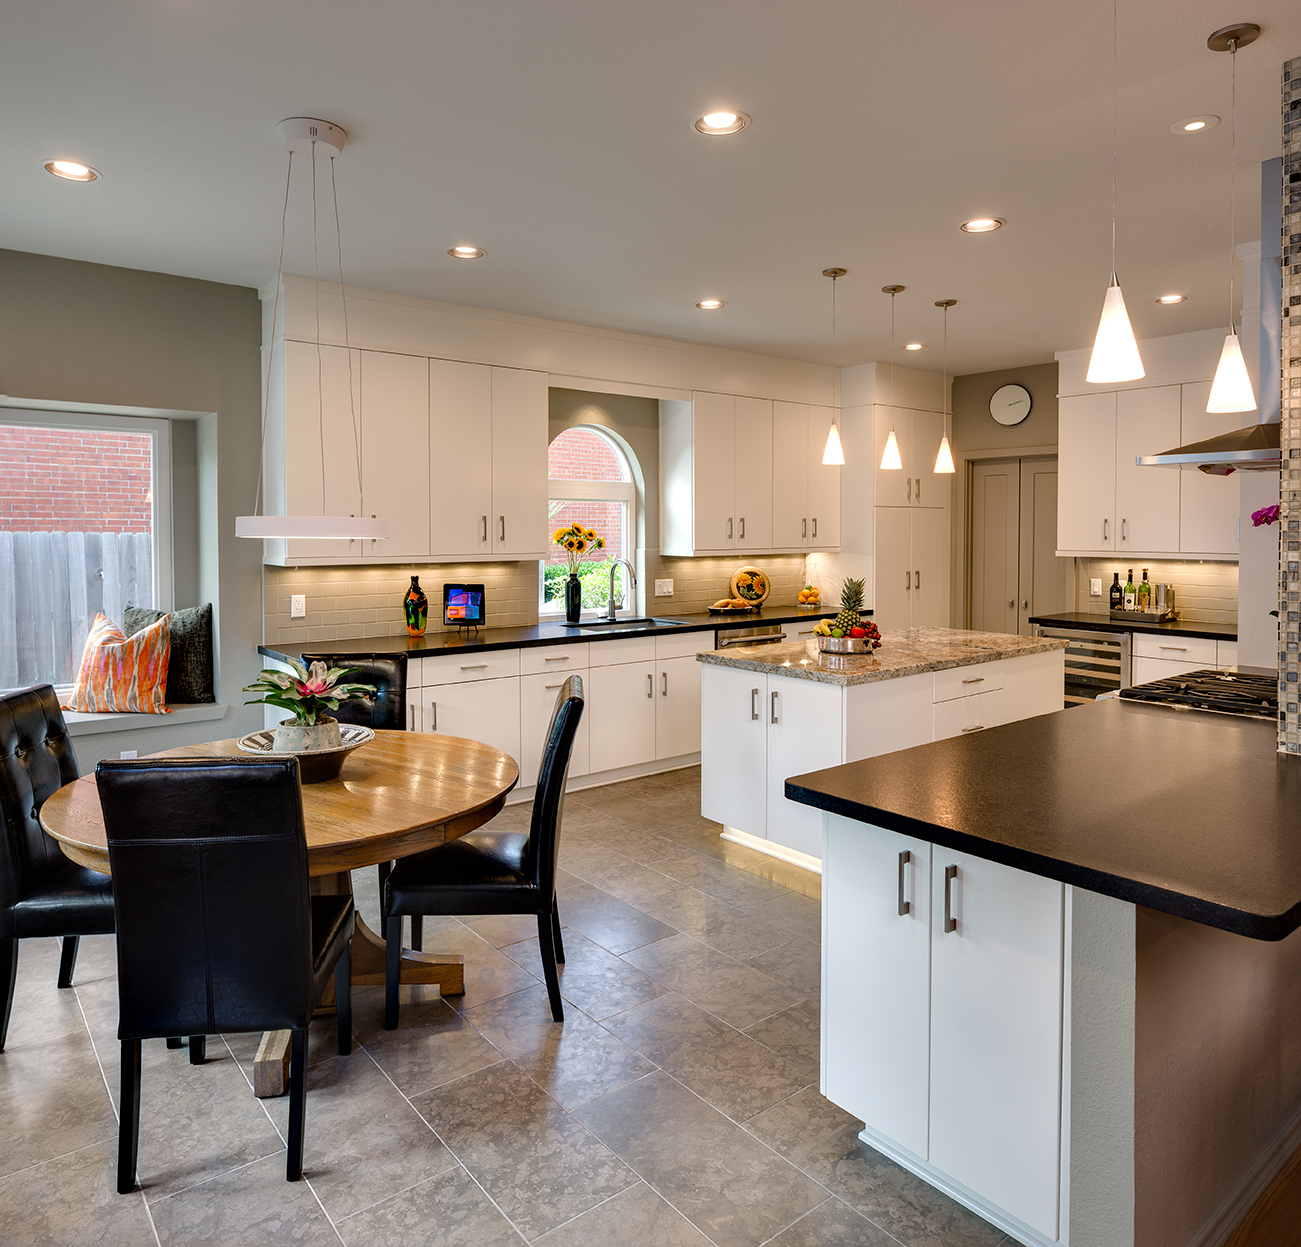 Kitchen Bath Are Most Popular Home Remodeling Projects Houston Chronicle